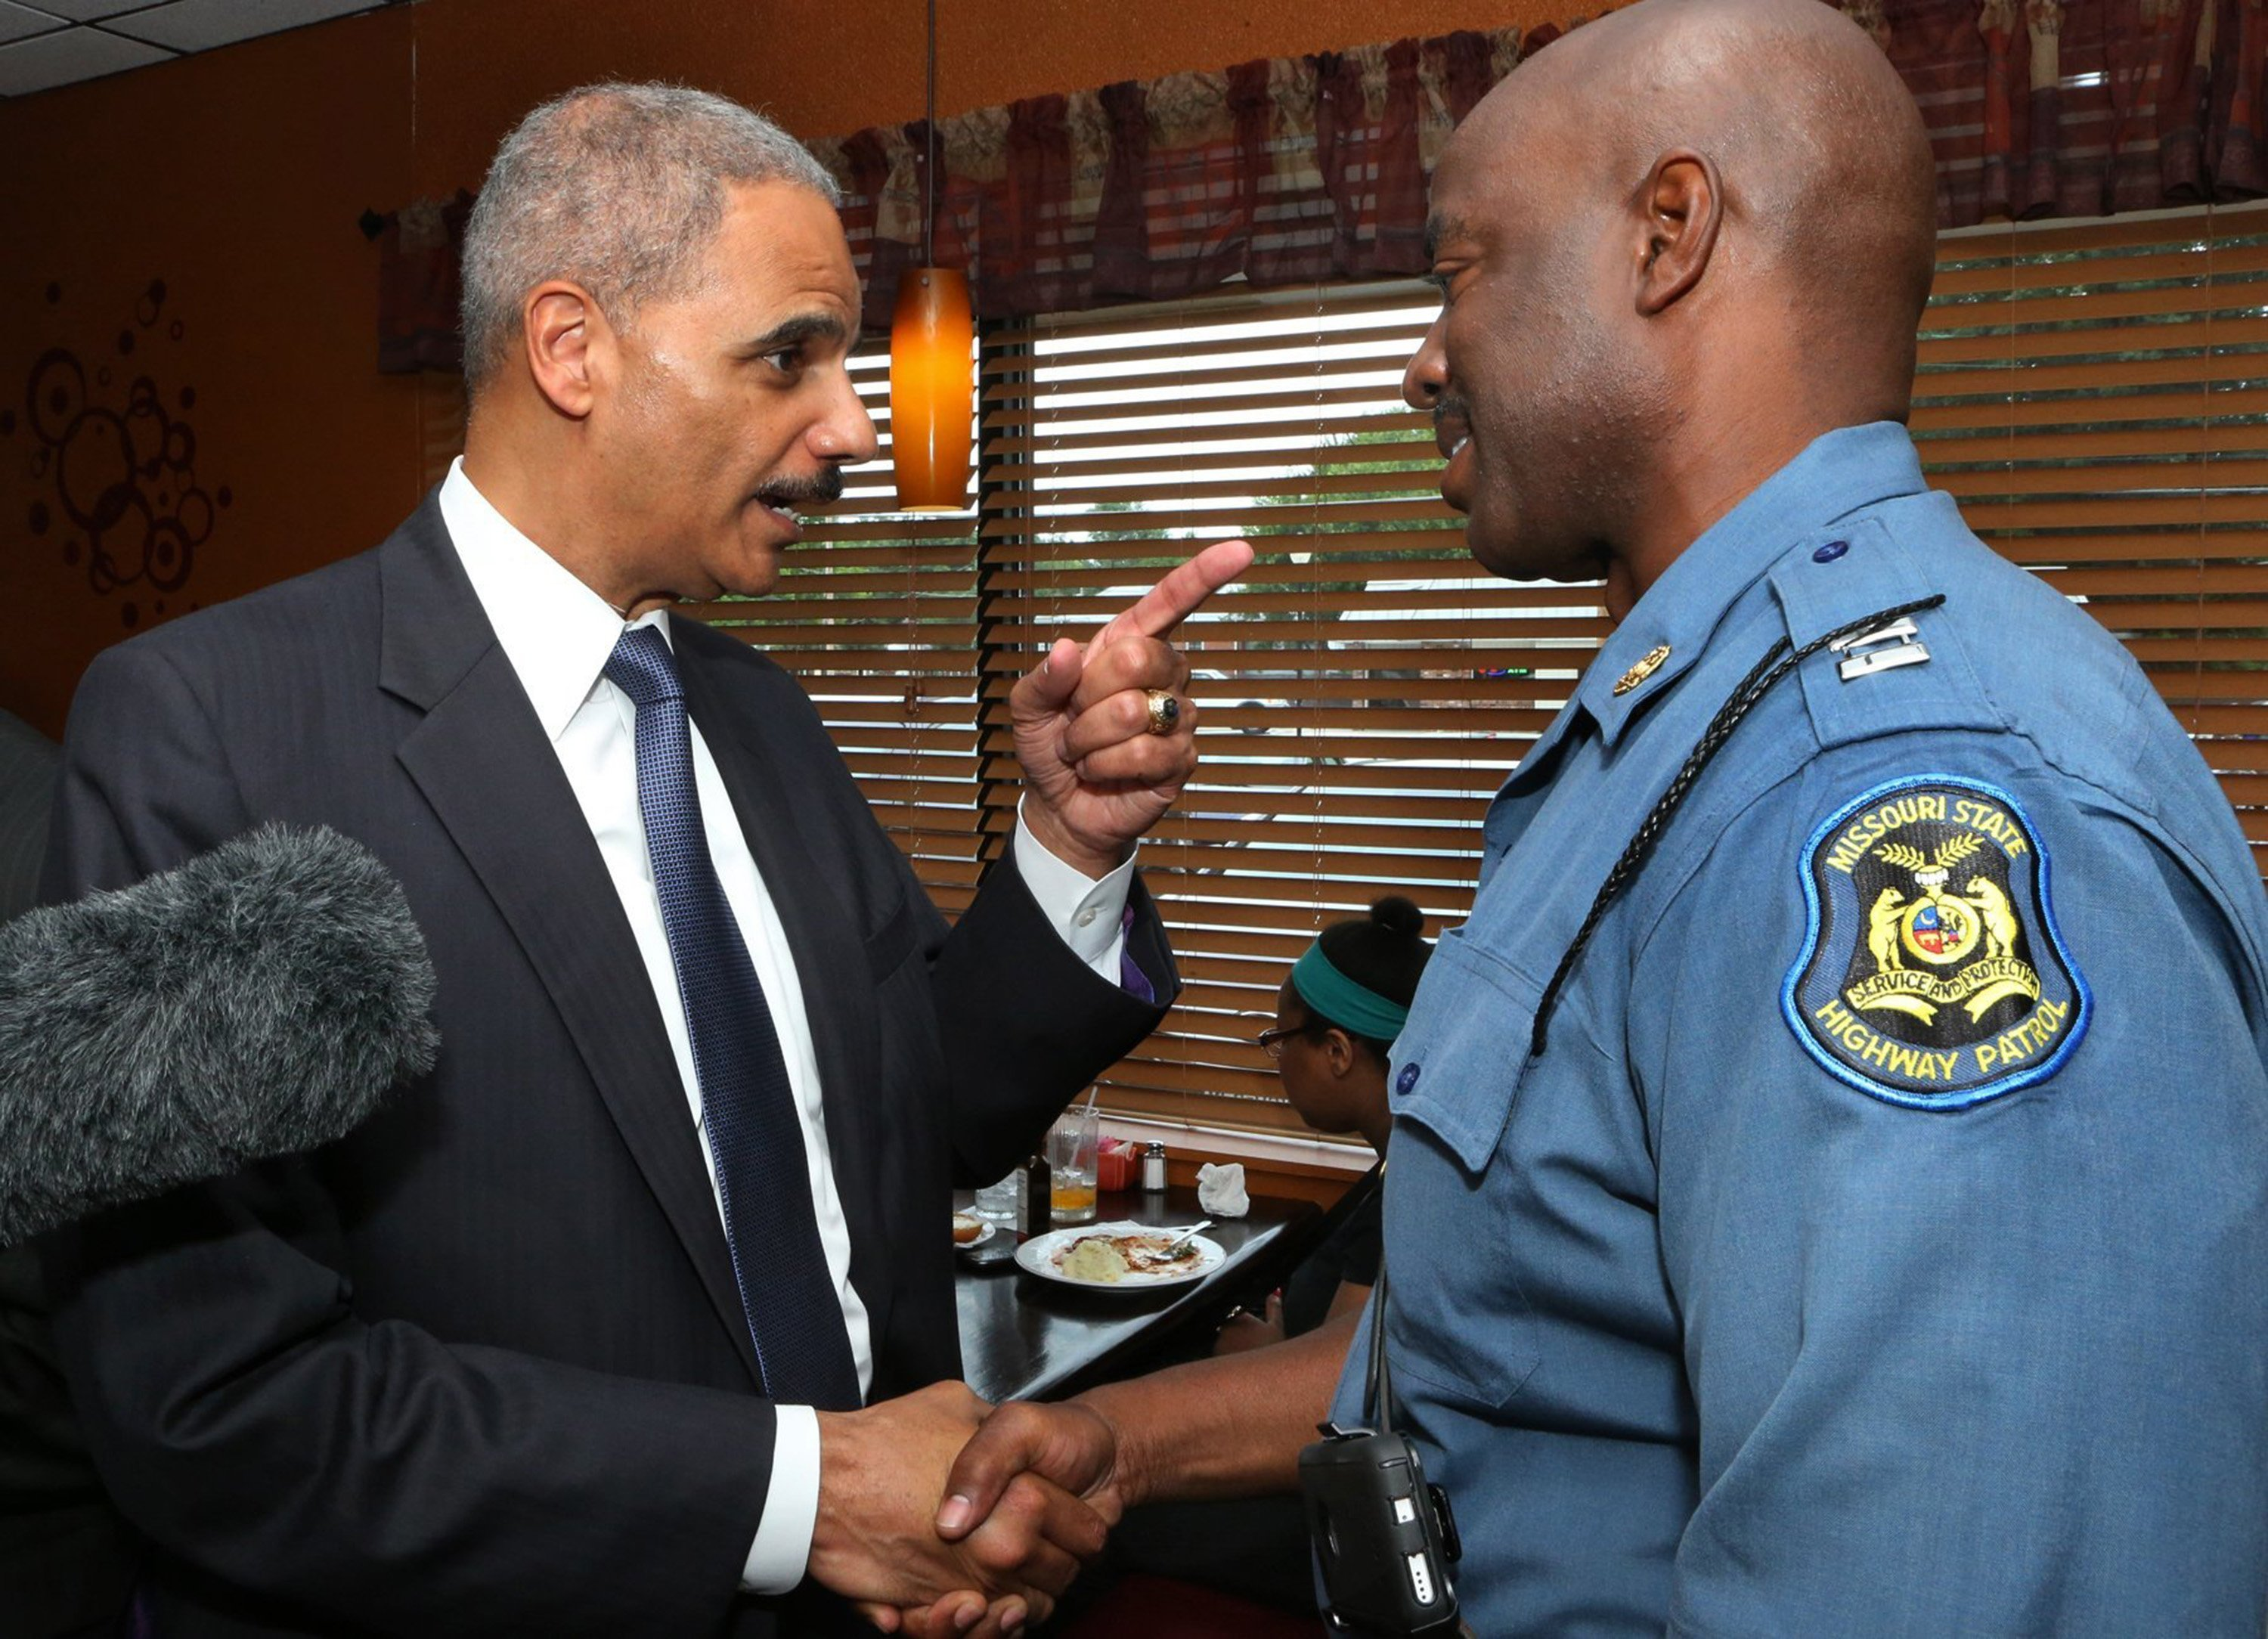 Attorney General Eric Holder tells Missouri Highway Patrol Capt. Ron Johnson that he needs to be sure to get some sleep and to not forget to tell his wife happy anniversary on Wednesday, Aug. 20, 2014, at Drake's Place Restaurant in Ferguson, Mo. Wednesday was the 26th wedding anniversary for Capt. Johnson. (J.B. Forbes/St. Louis Post-Dispatch/MCT)